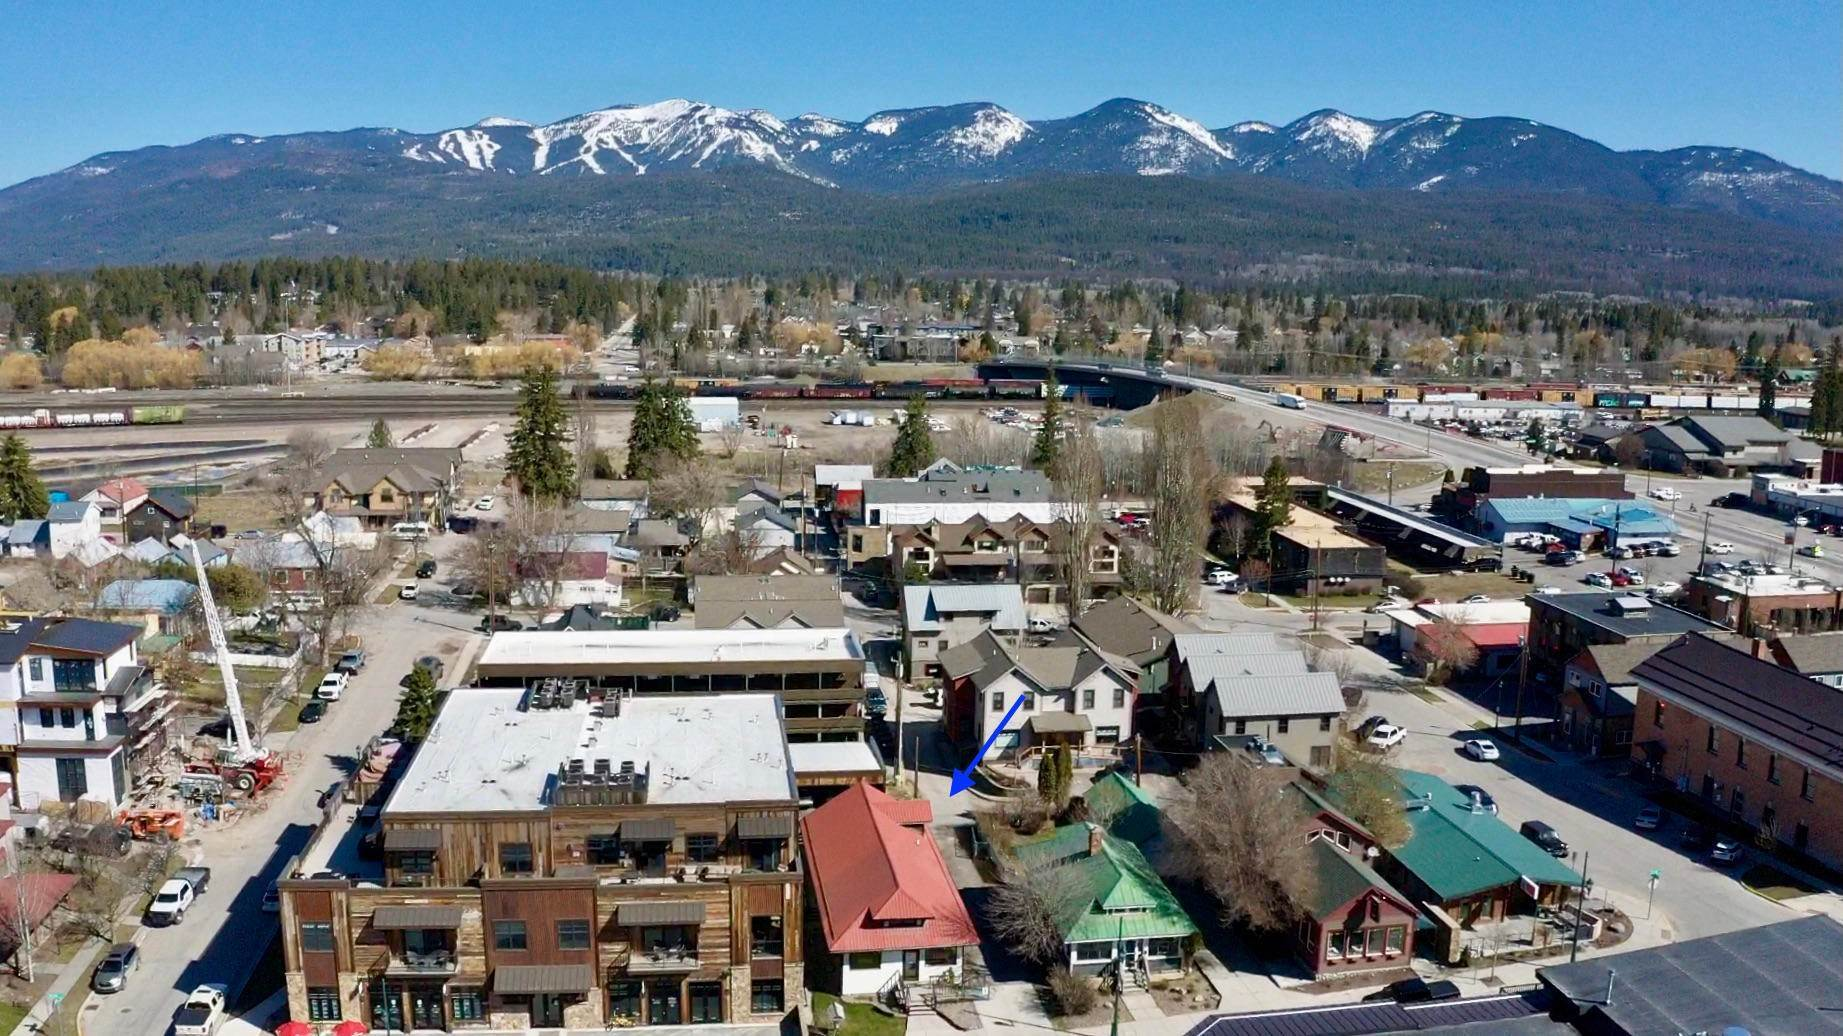 Commercial for Sale at 220 East Second Street Whitefish, Montana 59937 United States